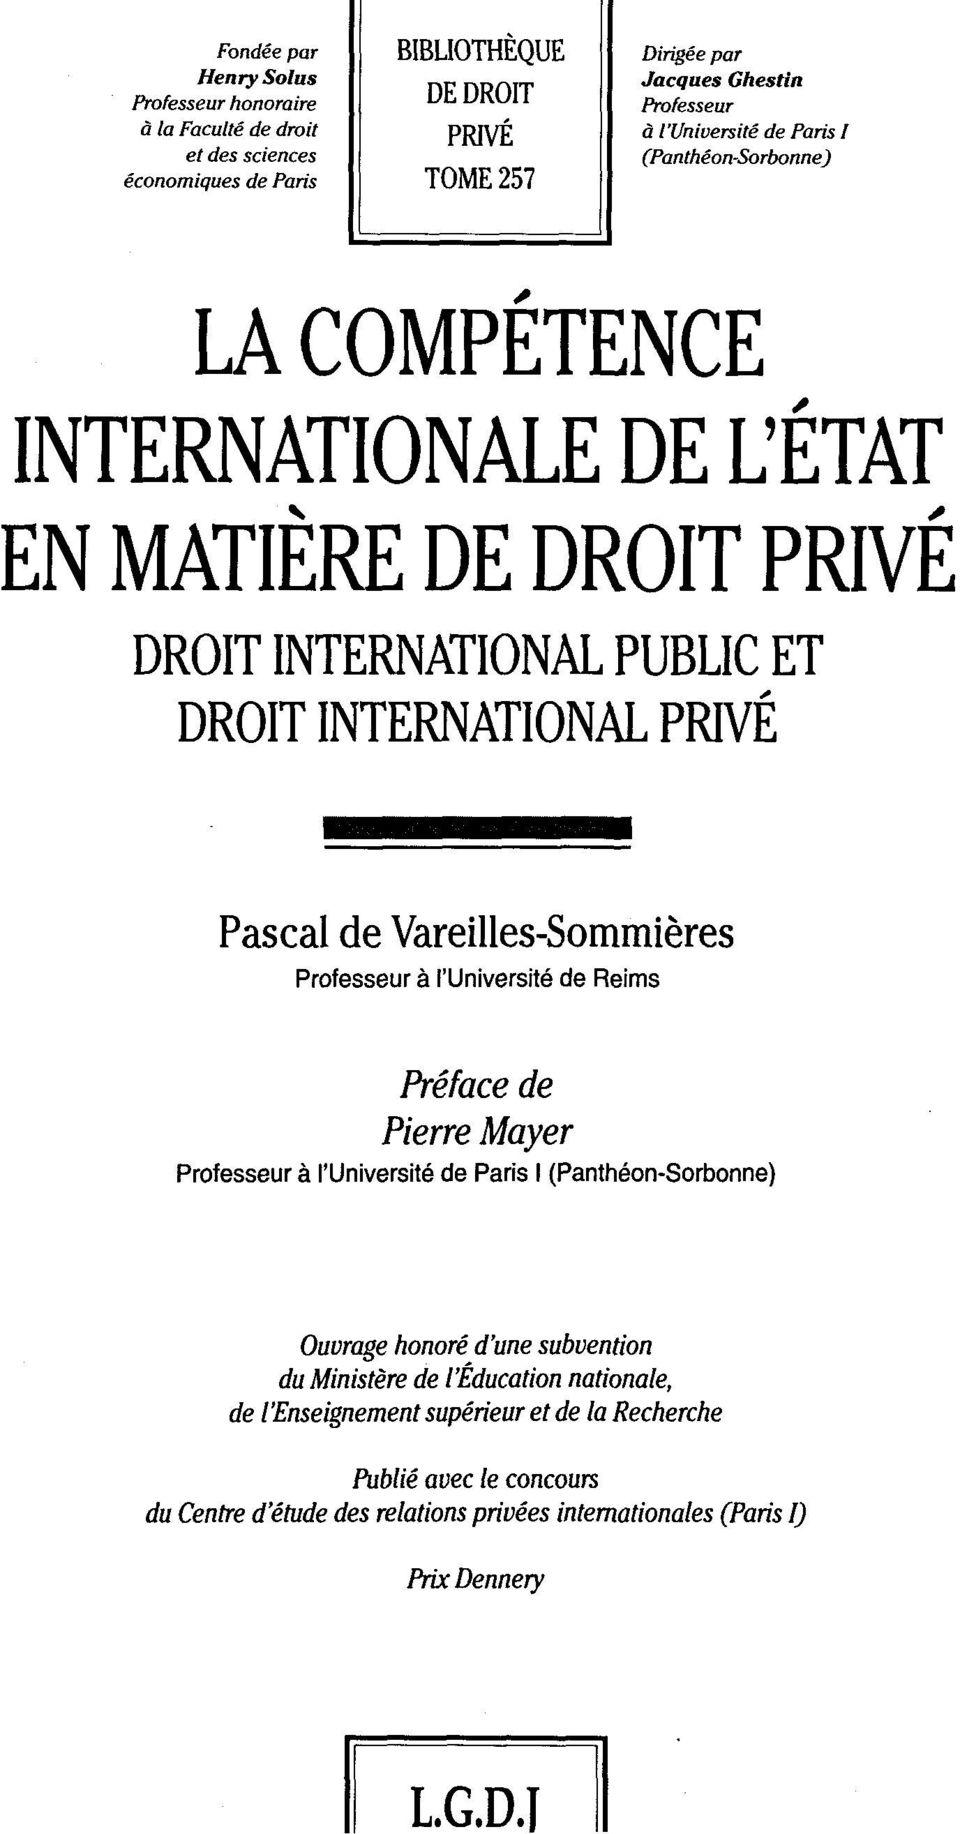 Pascal de Vareilles-Sommieres Professeur ä l'universite de Reims Preface de Pierre Mayer Professeur ä l'universite de Paris I (Pantheon-Sorbonne) Ouurage honore d'une Subvention